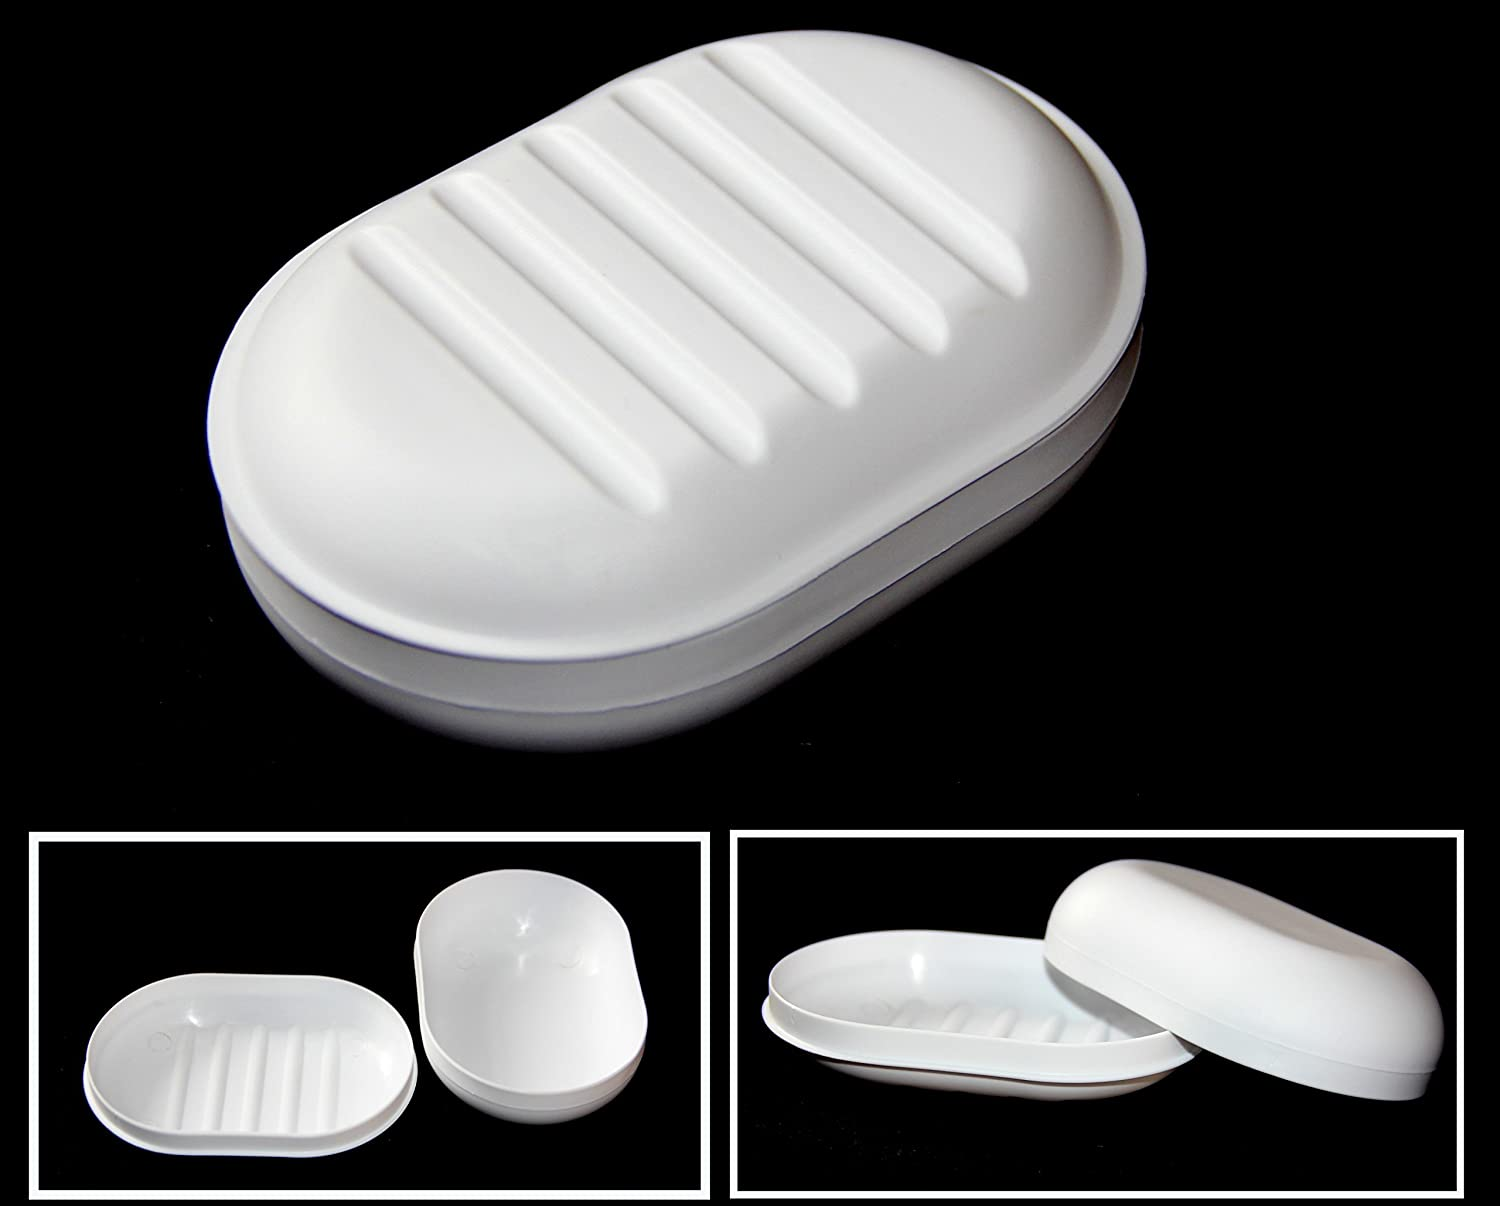 1 ALAZCO Travel Soap Dish Large Oval Container Box Case White Great for Home School Gym